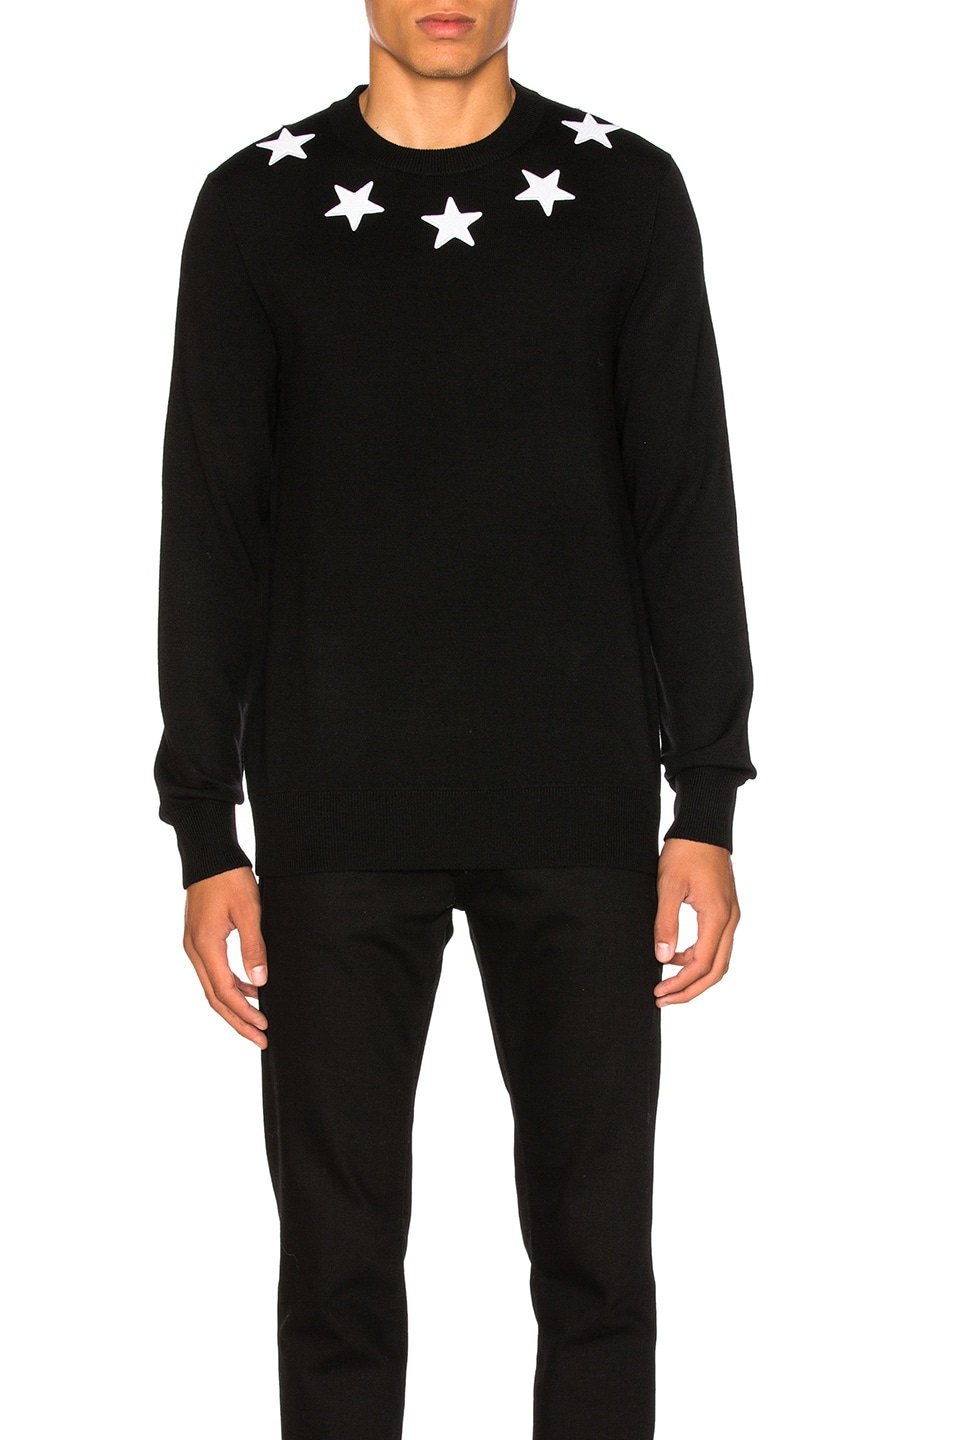 875f7c8f0a017 Image 1 of Givenchy Wool Pullover in Black   White